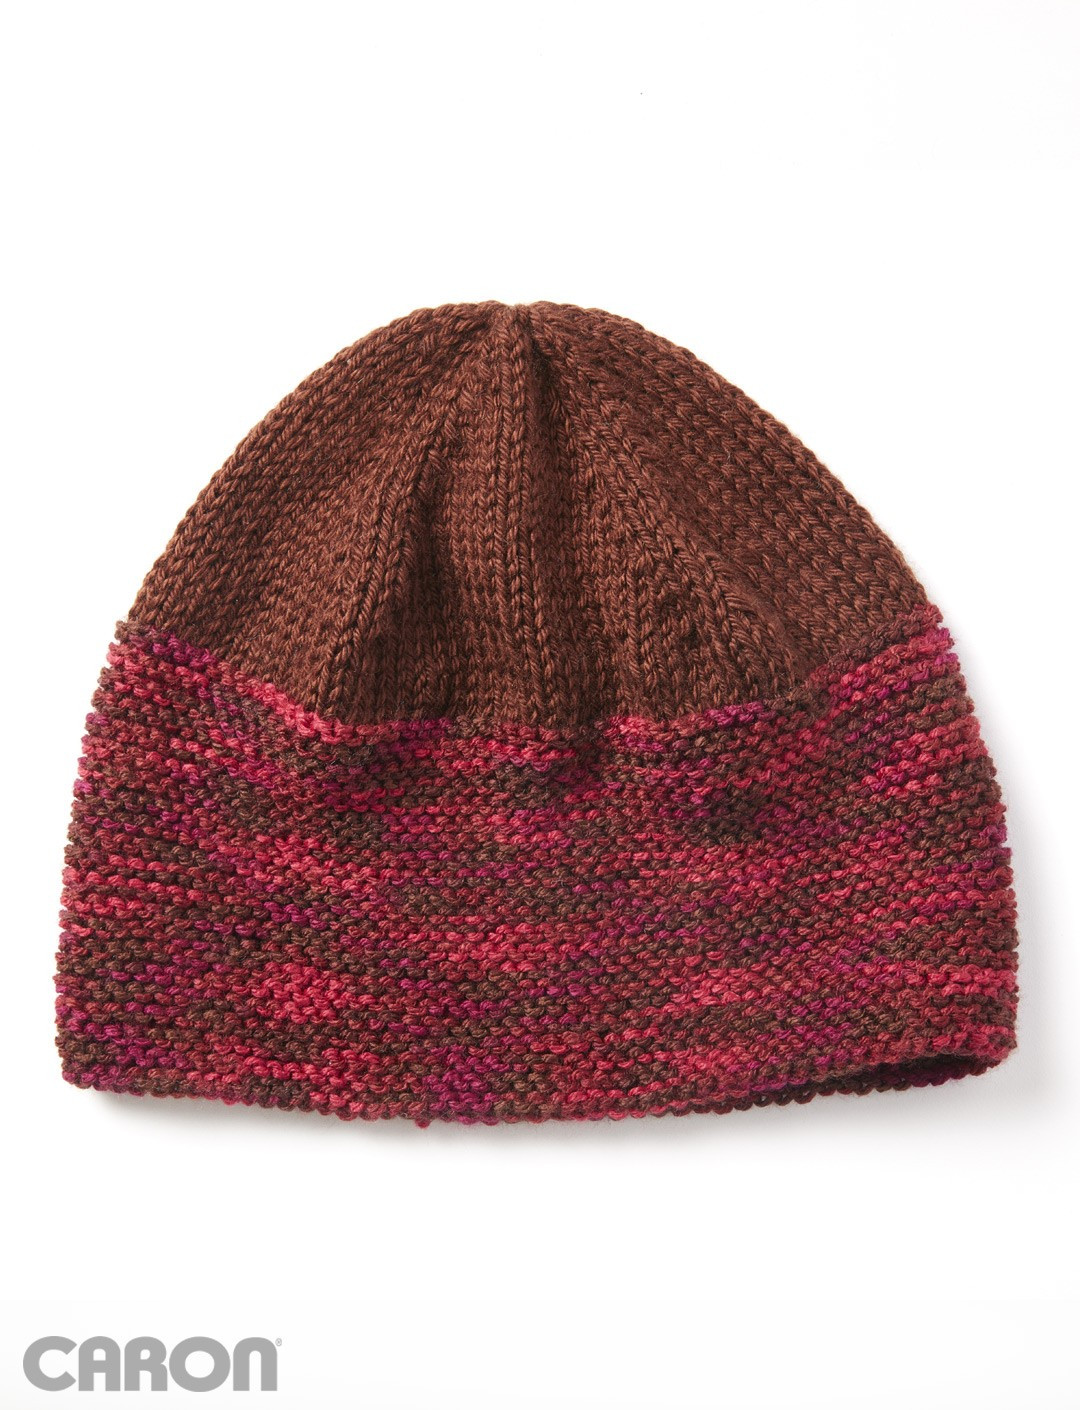 Lovely Caron Great Beginnings Hat Knit Pattern Caron Simply soft Patterns Of Marvelous 49 Photos Caron Simply soft Patterns